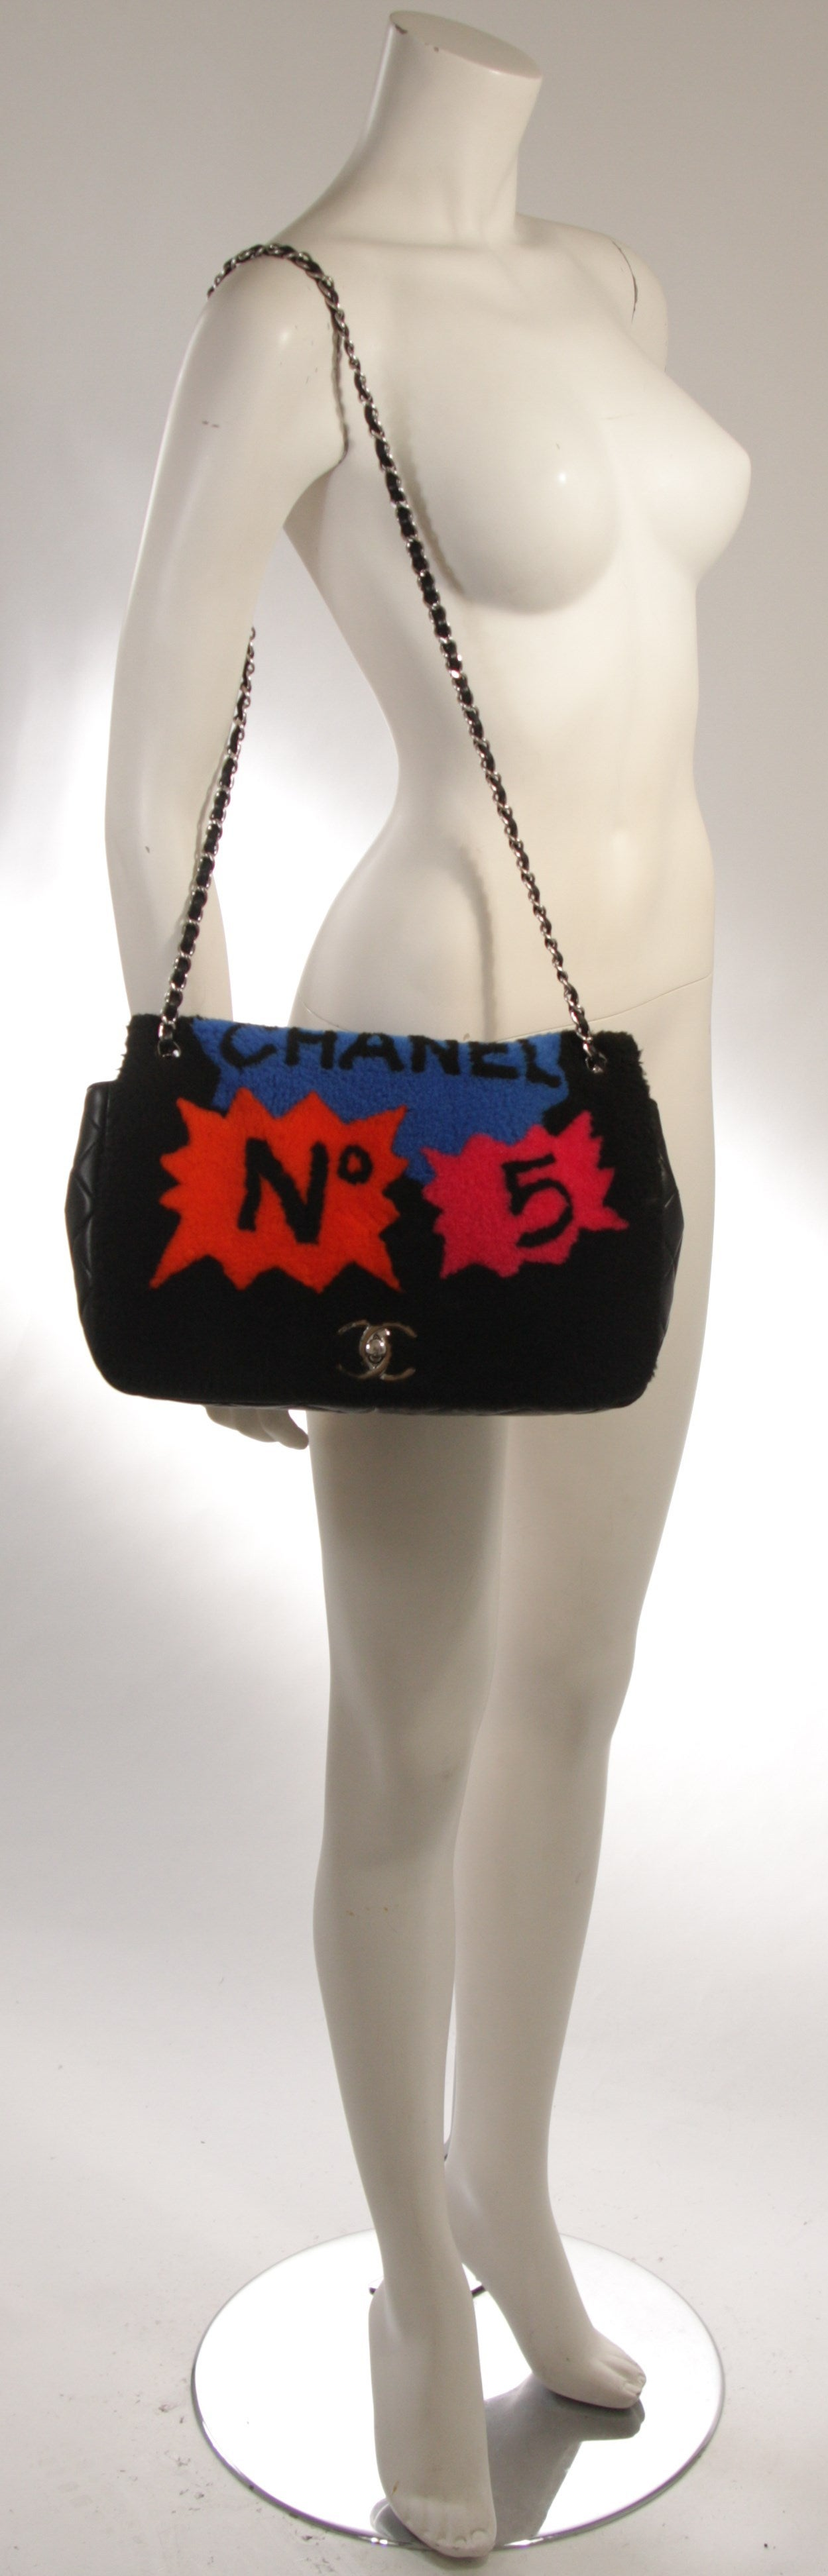 Chanel Shearling Art Pop Large Purse with Quilted Lambskin Fall 2014 For Sale 6